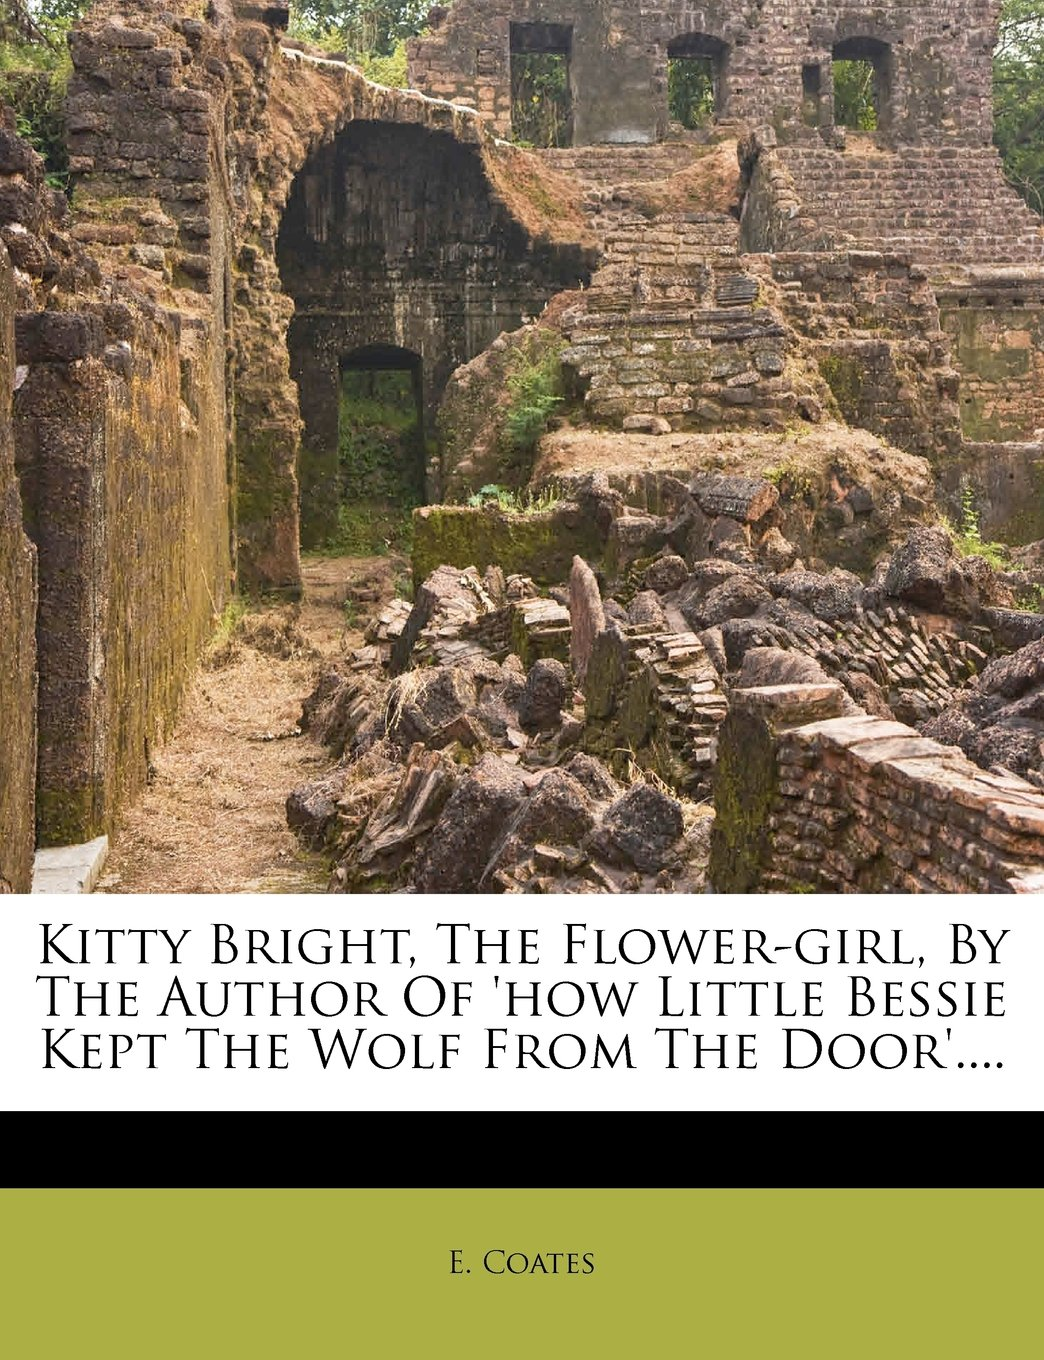 Kitty Bright, the Flower-Girl, by the Author of 'How Little Bessie Kept the Wolf from the Door'.... PDF